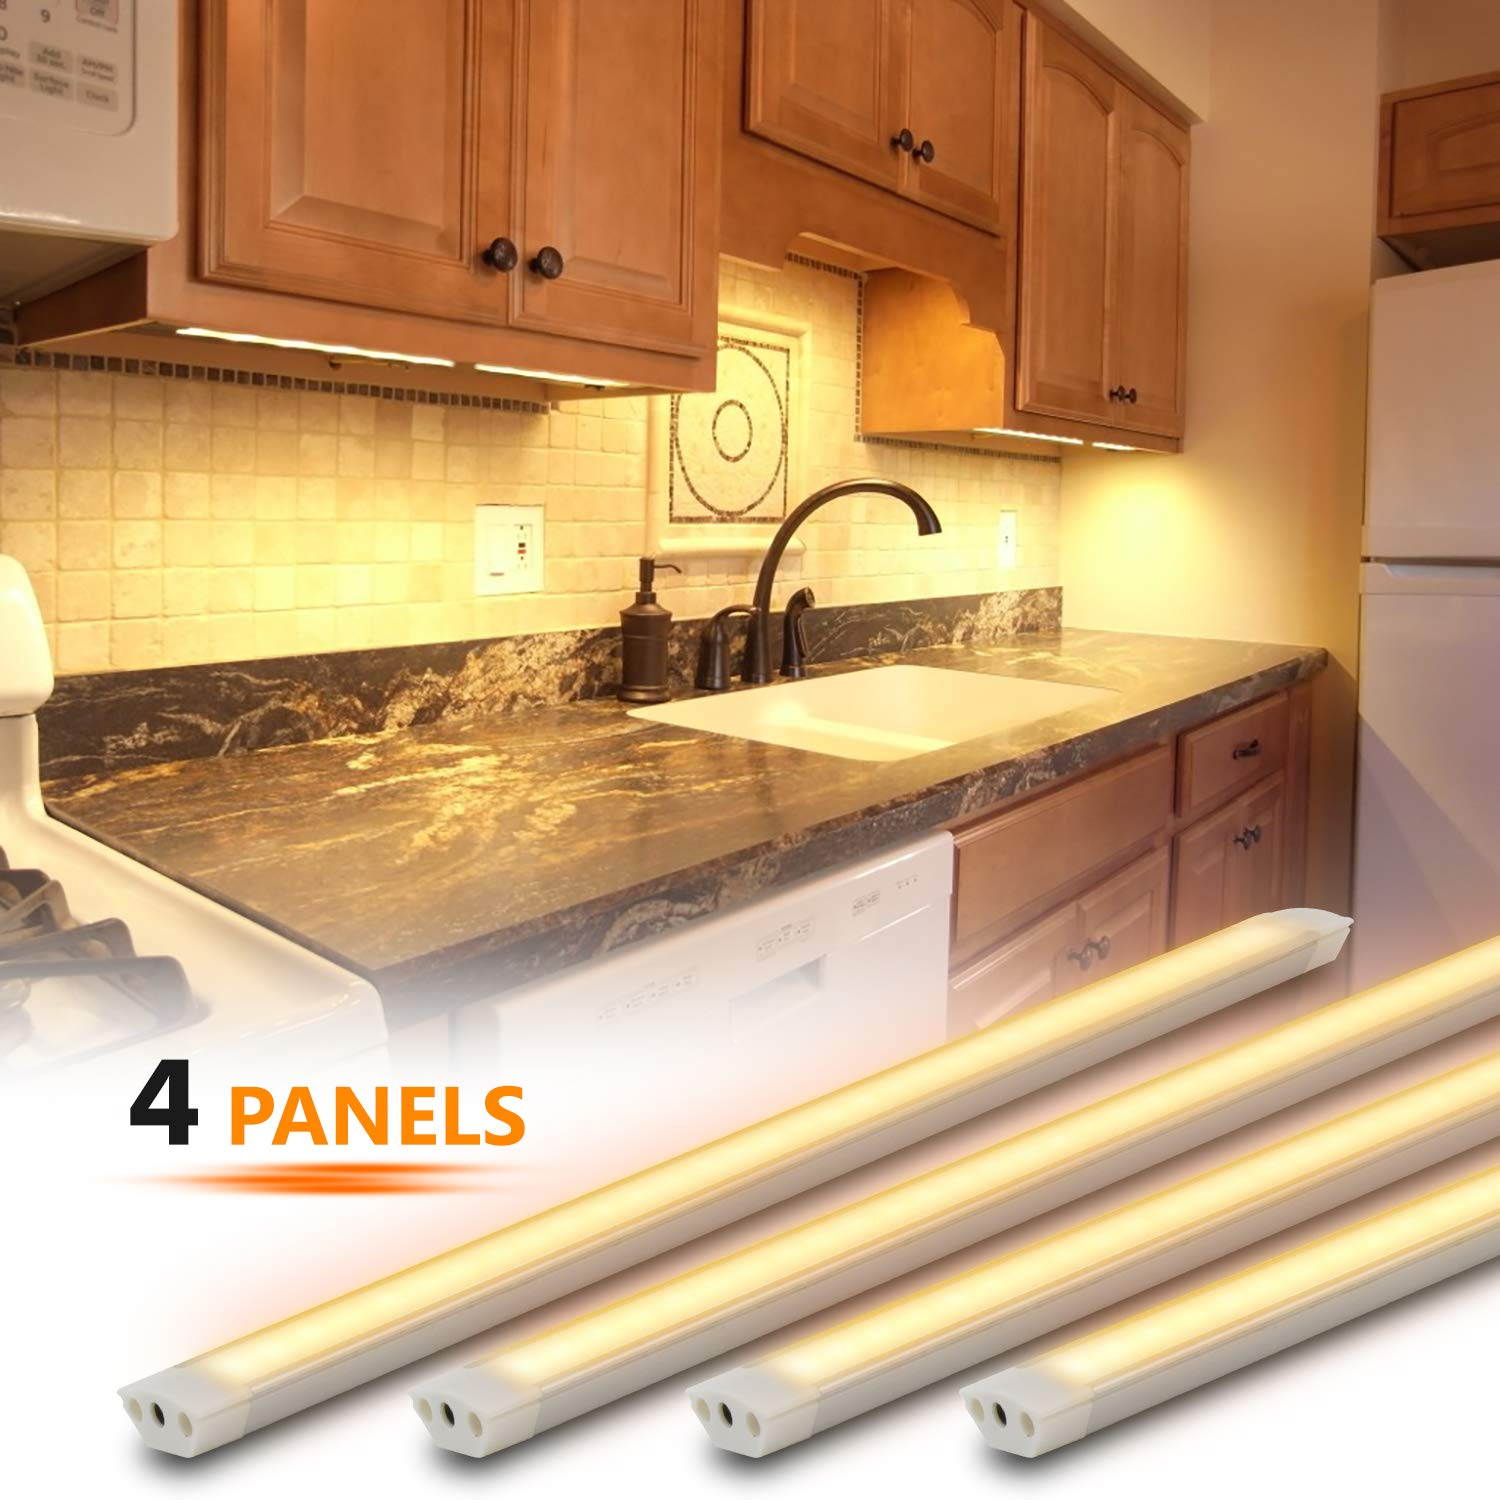 Under Cabinet Lighting Kit 4pcs 12 Inches Under Counter Lights 12w 840 Lumens Dimmable Led Kitchen Cabinet Strip Lights Warm Light 3000k Buy Online In Dominica At Dominica Desertcart Com Productid 118225927